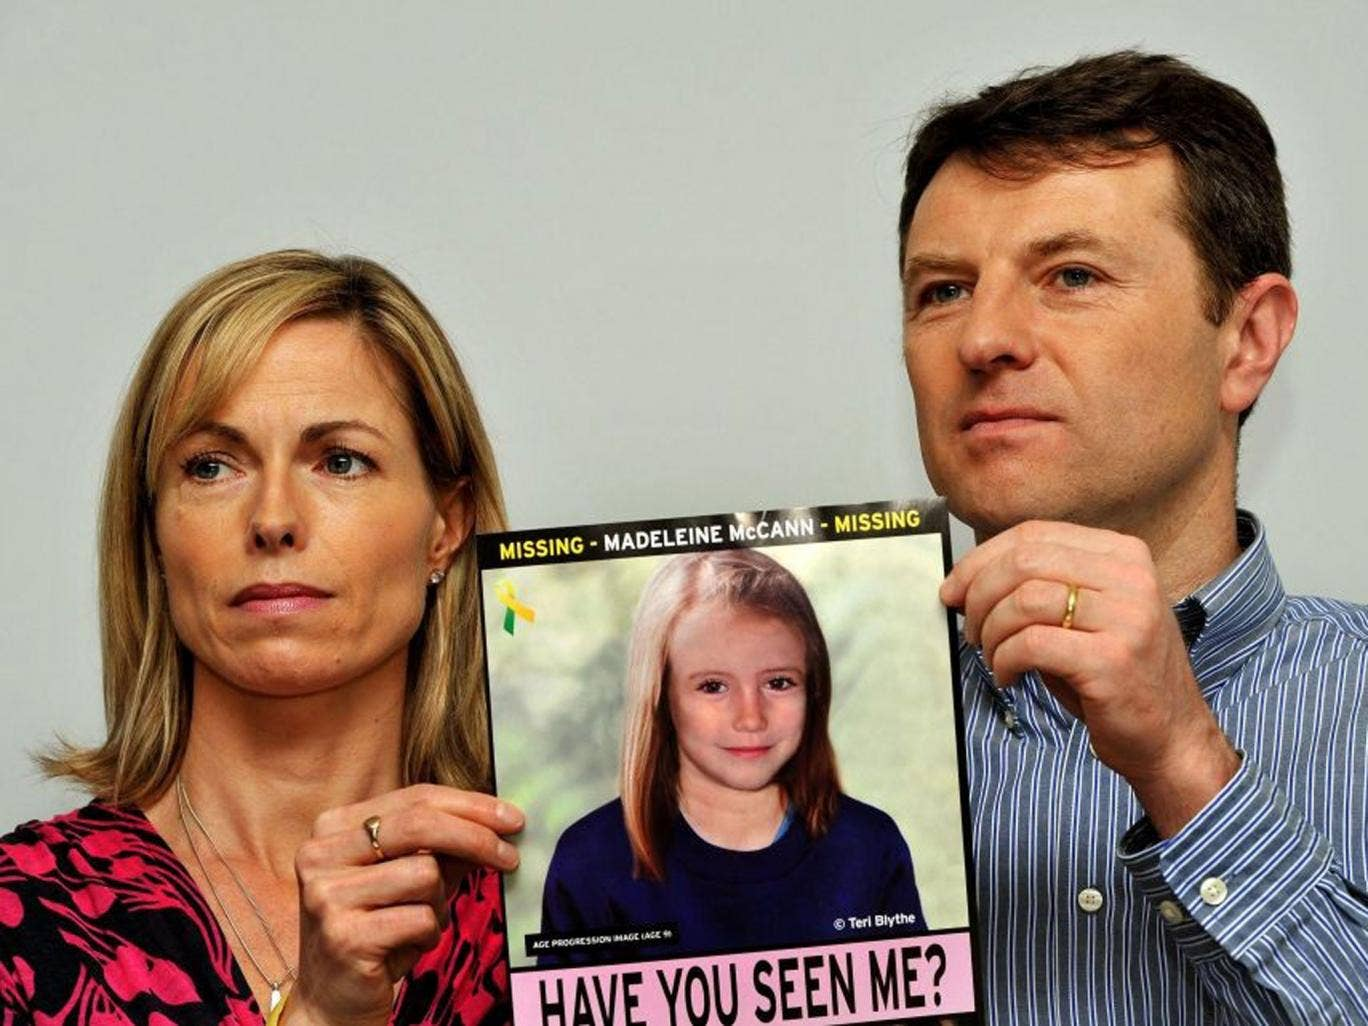 """The parents of missing Madeleine McCann have described as """"pure speculation"""" reports in the Portuguese press suggesting that a chief suspect in the disappearance of their daughter was killed in a tractor accident four years ago."""